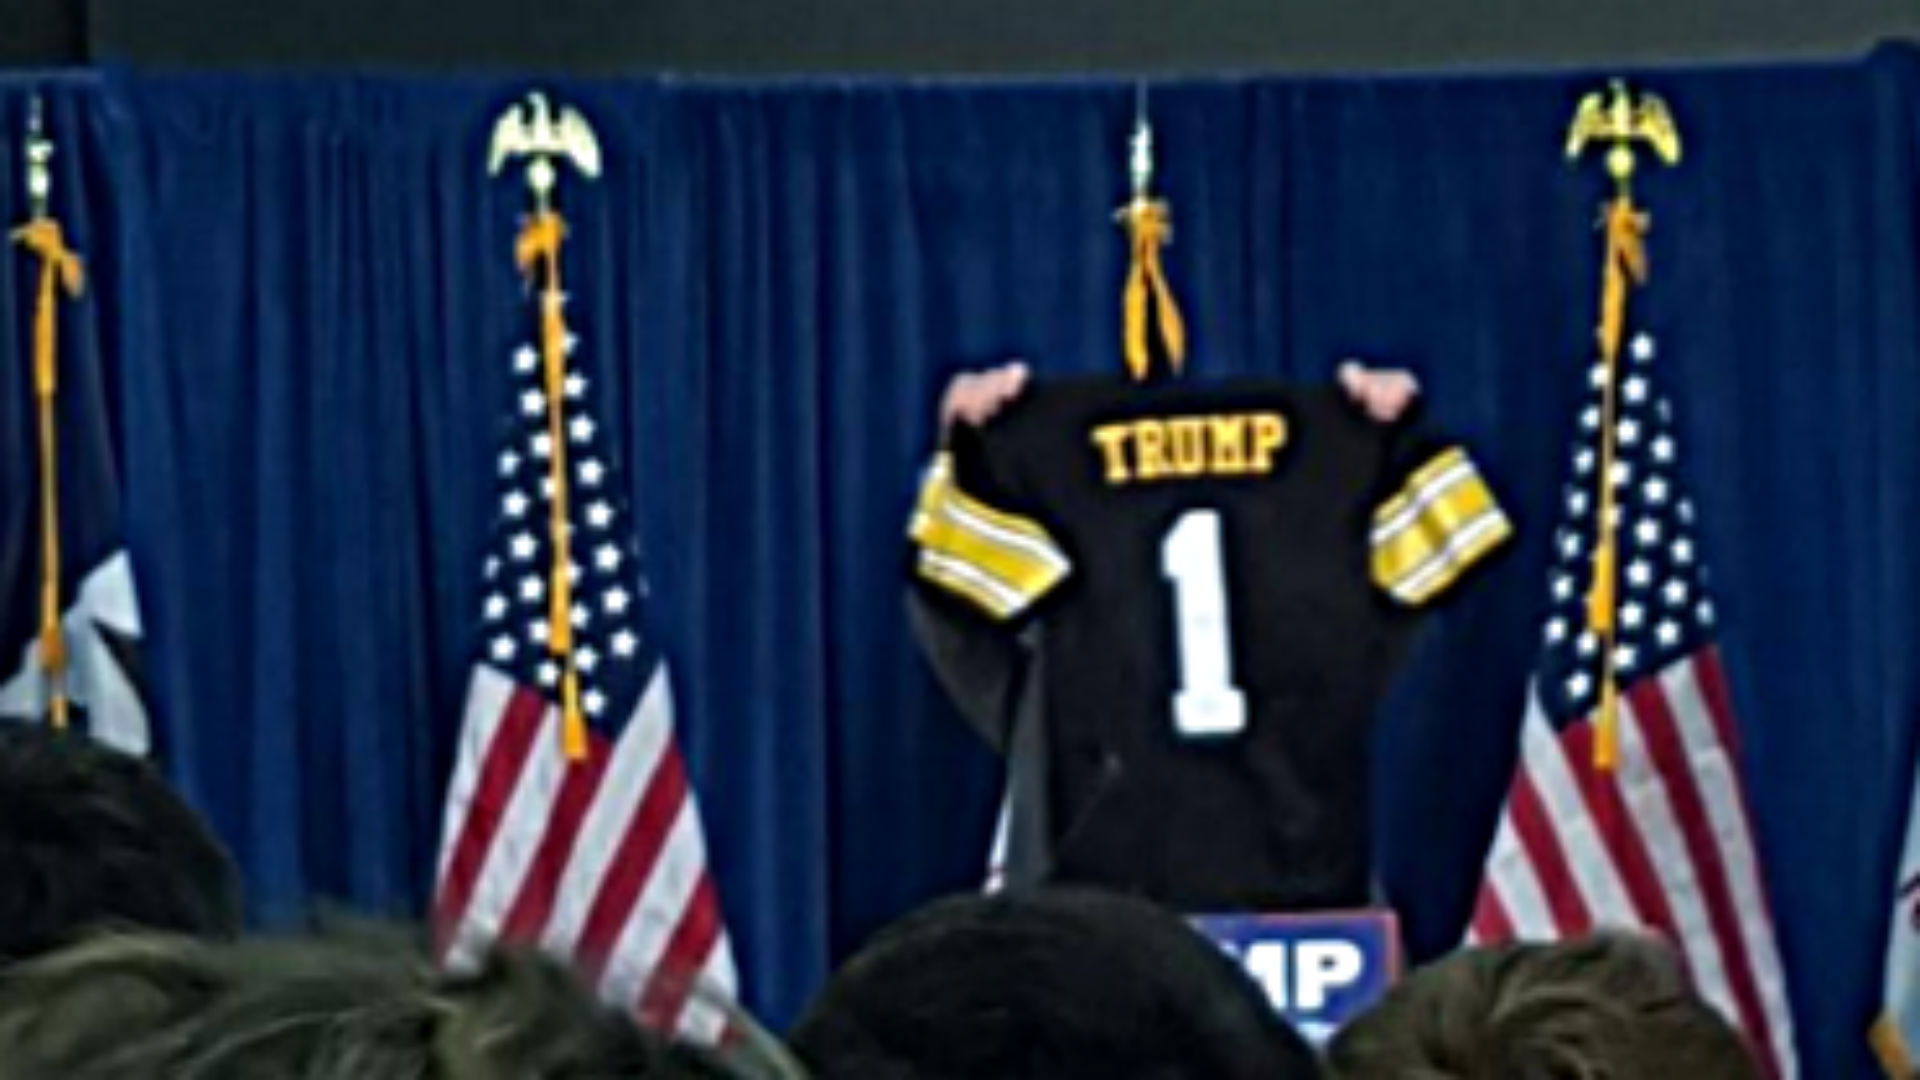 Donald Trump appears at University of Iowa political rally